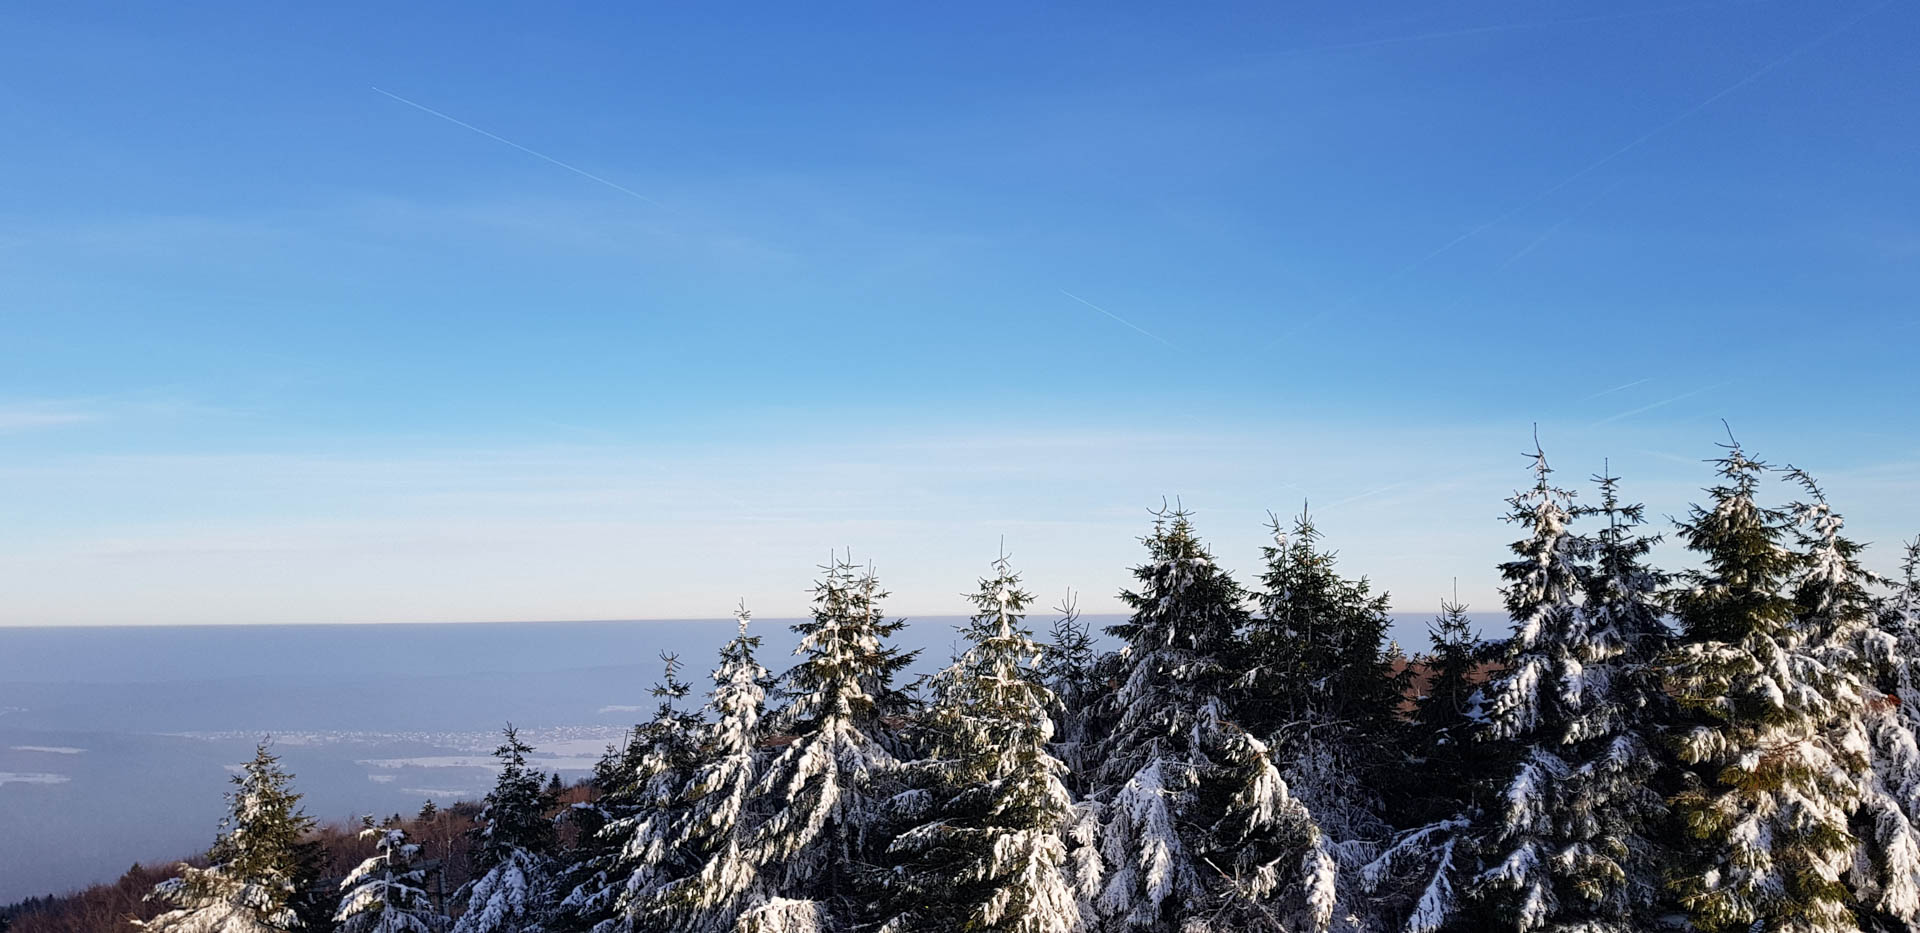 Feuerberg_Winter_2019-02-06-175